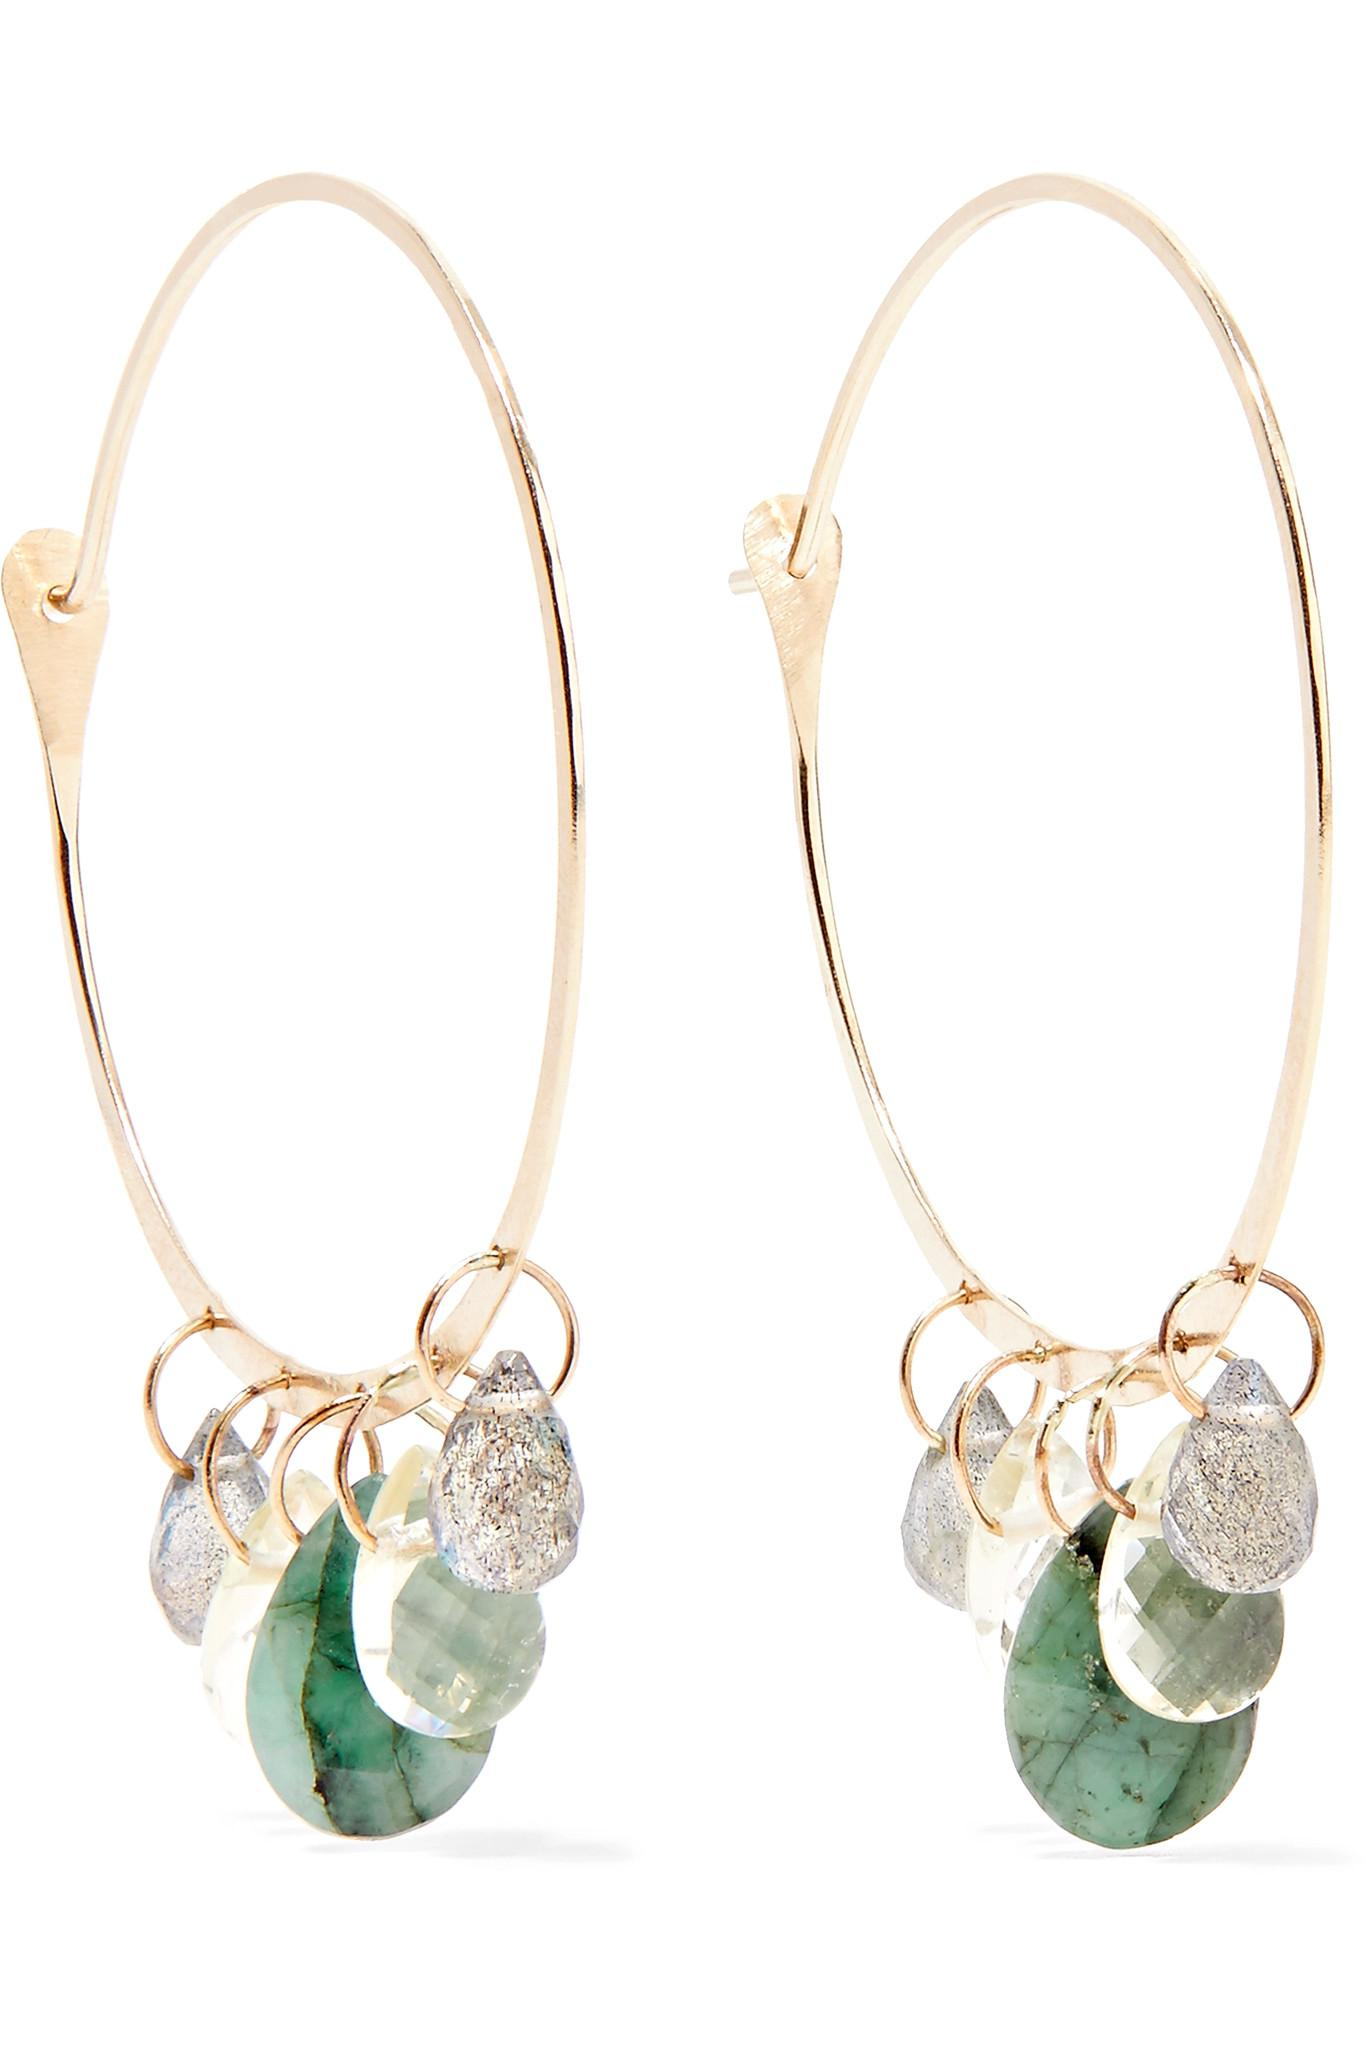 Melissa Joy Manning 14-karat Gold Multi-stone Hoop Earrings CjdhwPmoa